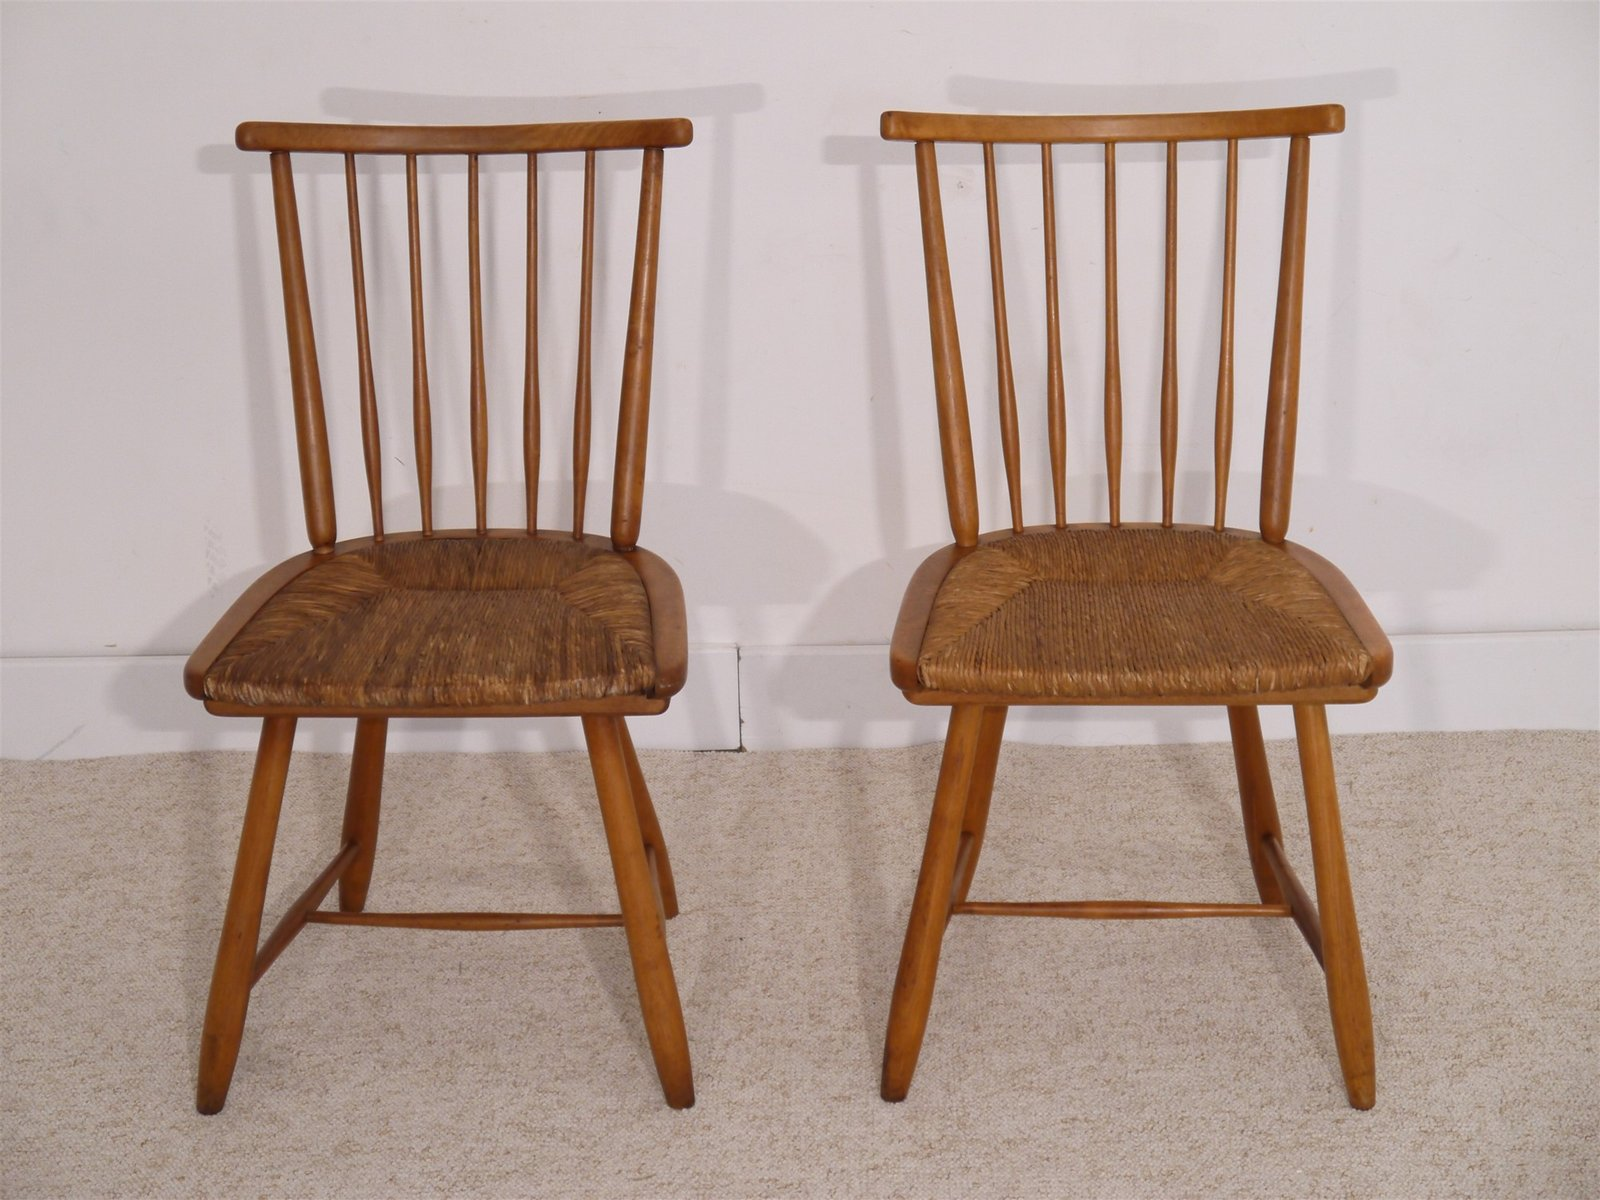 mid century german chairs by arno lambrecht for wk m bel 1950s set of 2 for sale at pamono. Black Bedroom Furniture Sets. Home Design Ideas